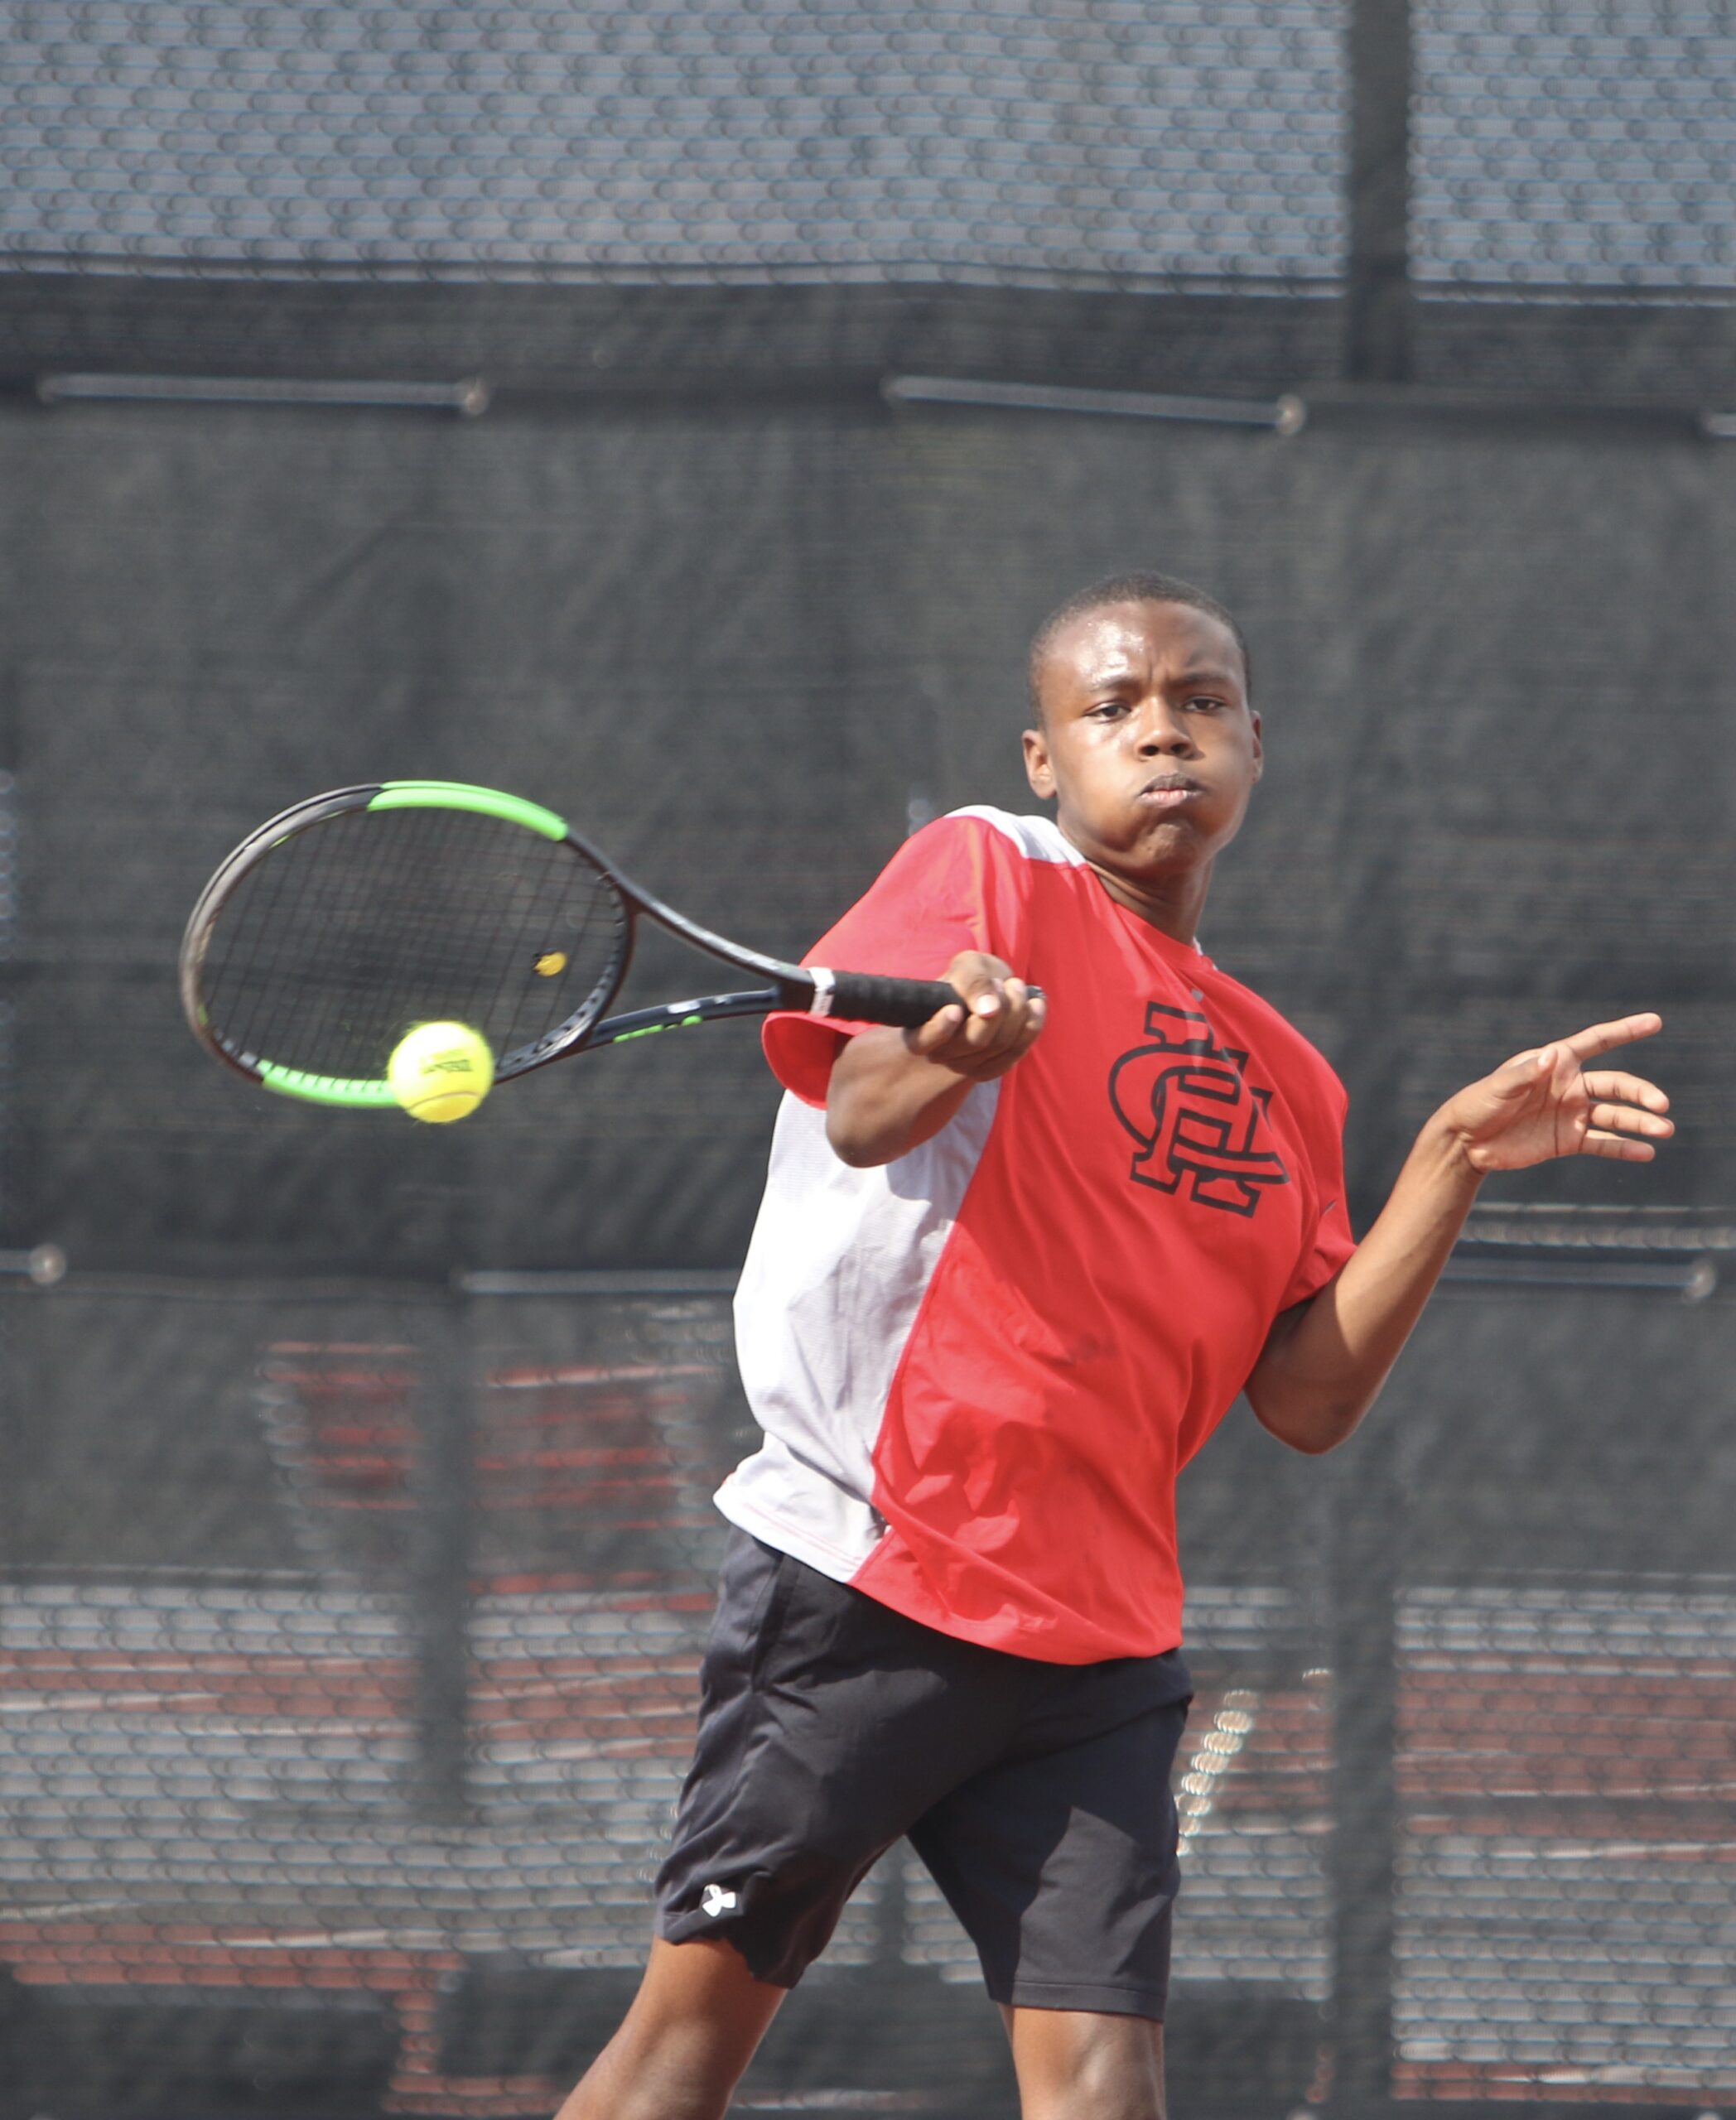 Tyrell Oliver playing tennis